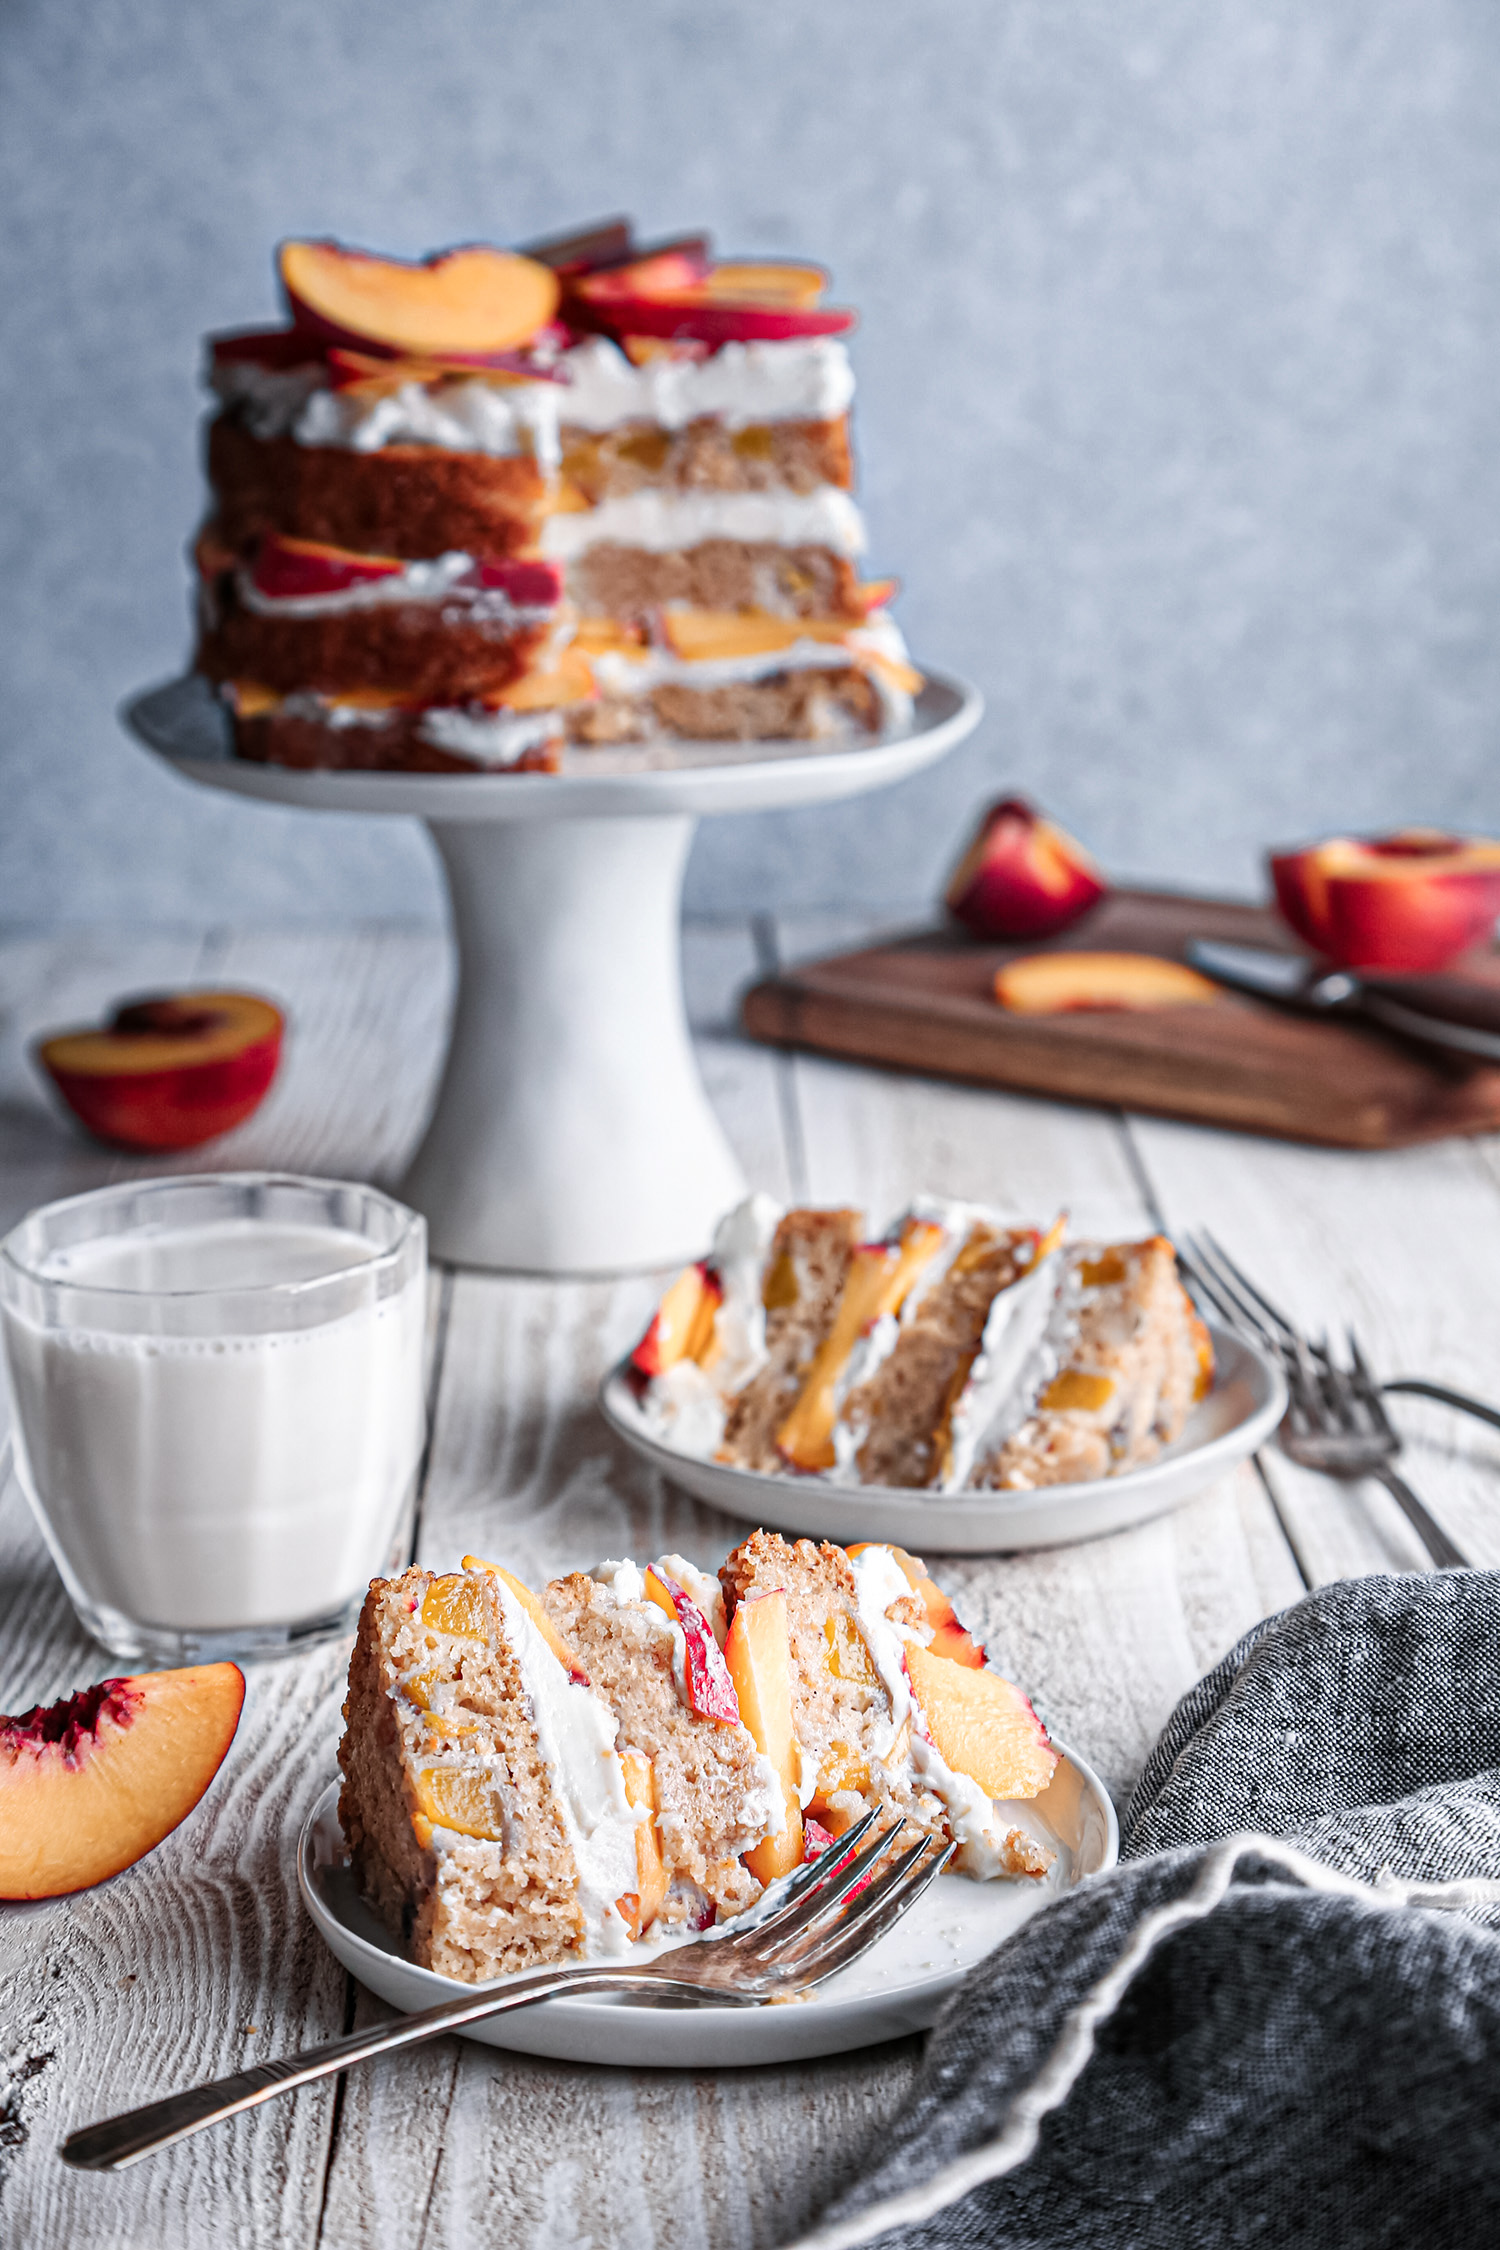 Peaches and Cream Layer Cake | Vegan friendly with gluten free and refined sugar free options.